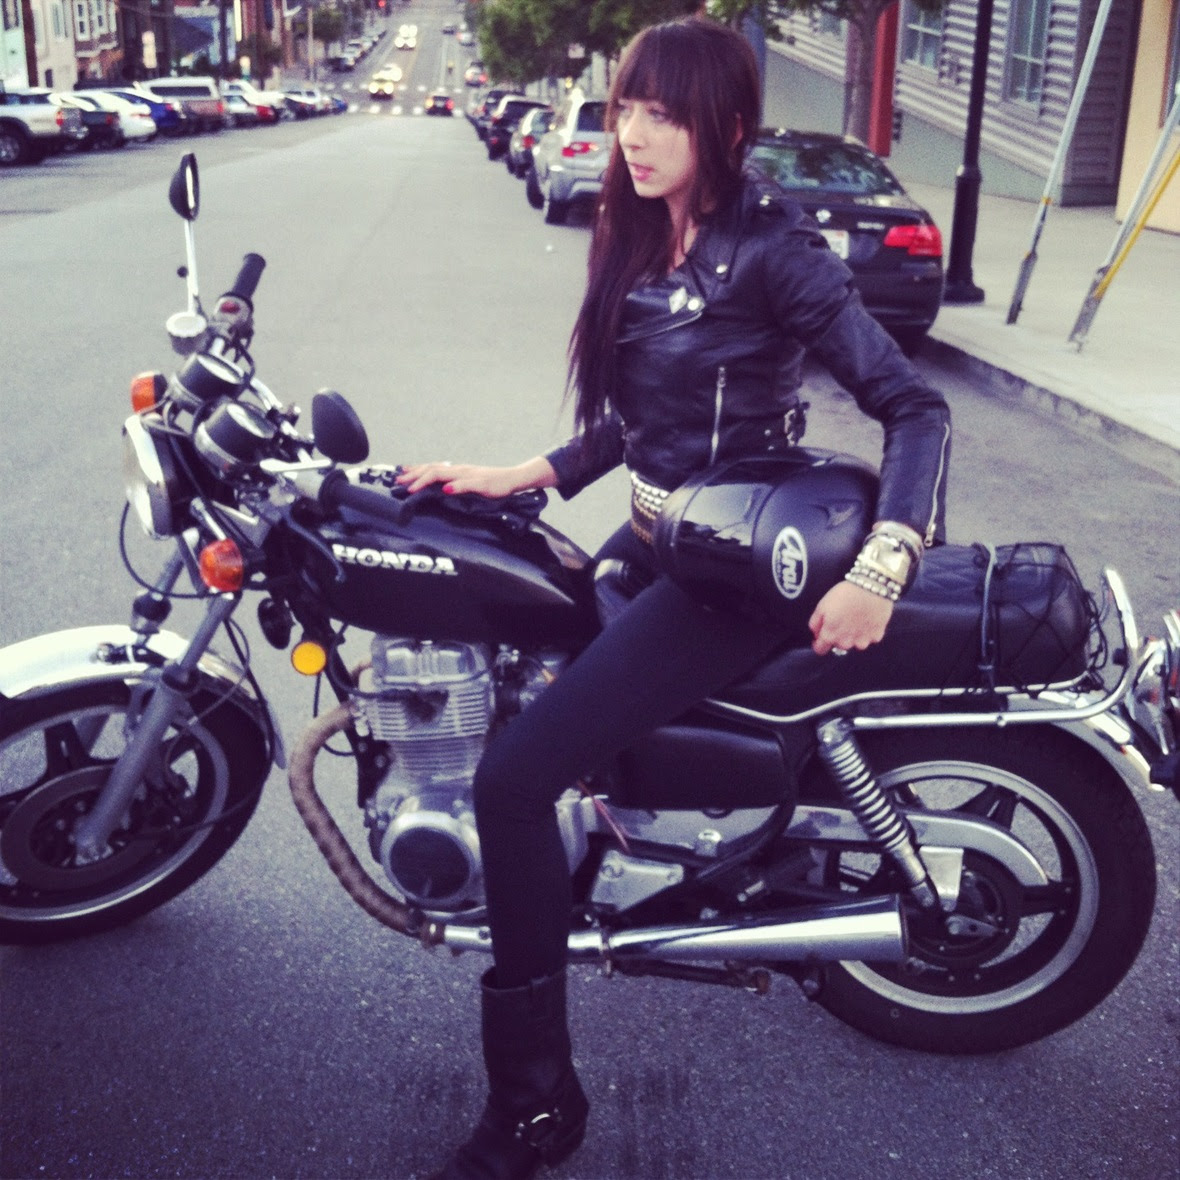 mistress_ramona_ryder_motorcycle_leather_biker_sf_nyc_escort_punk_1